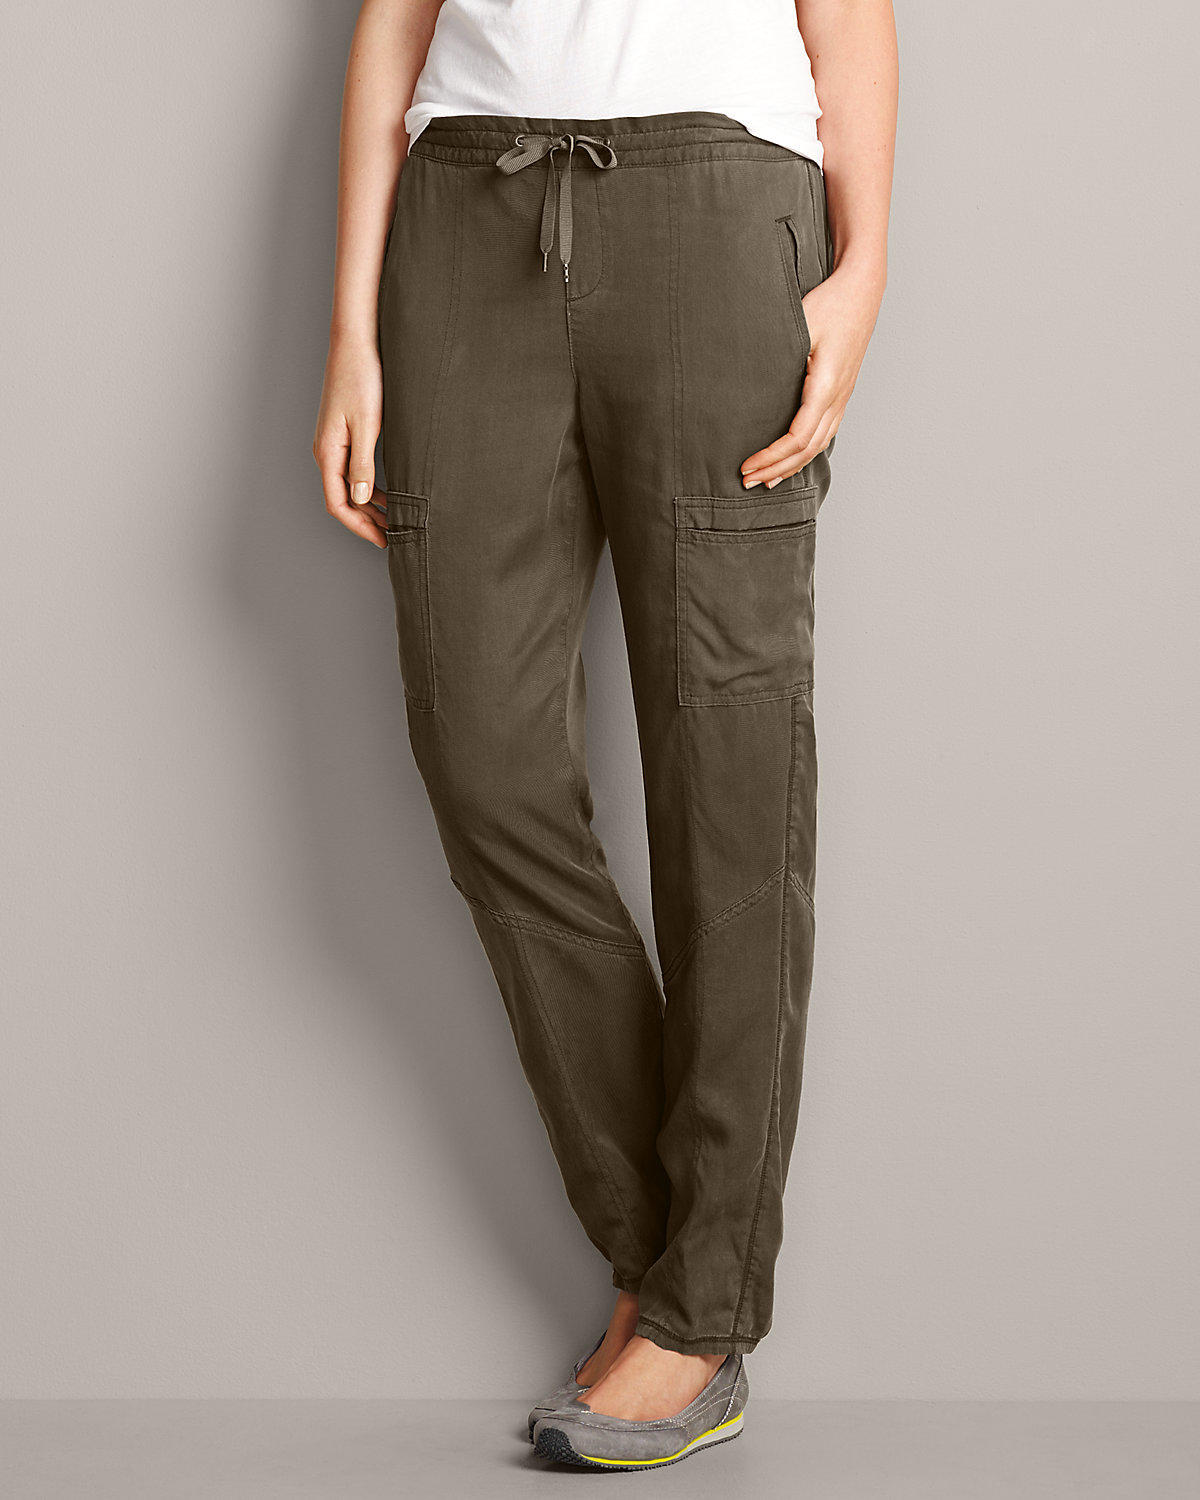 Wonderful LADIES CARGO JOGGER PANTS  CAMO OLIVE